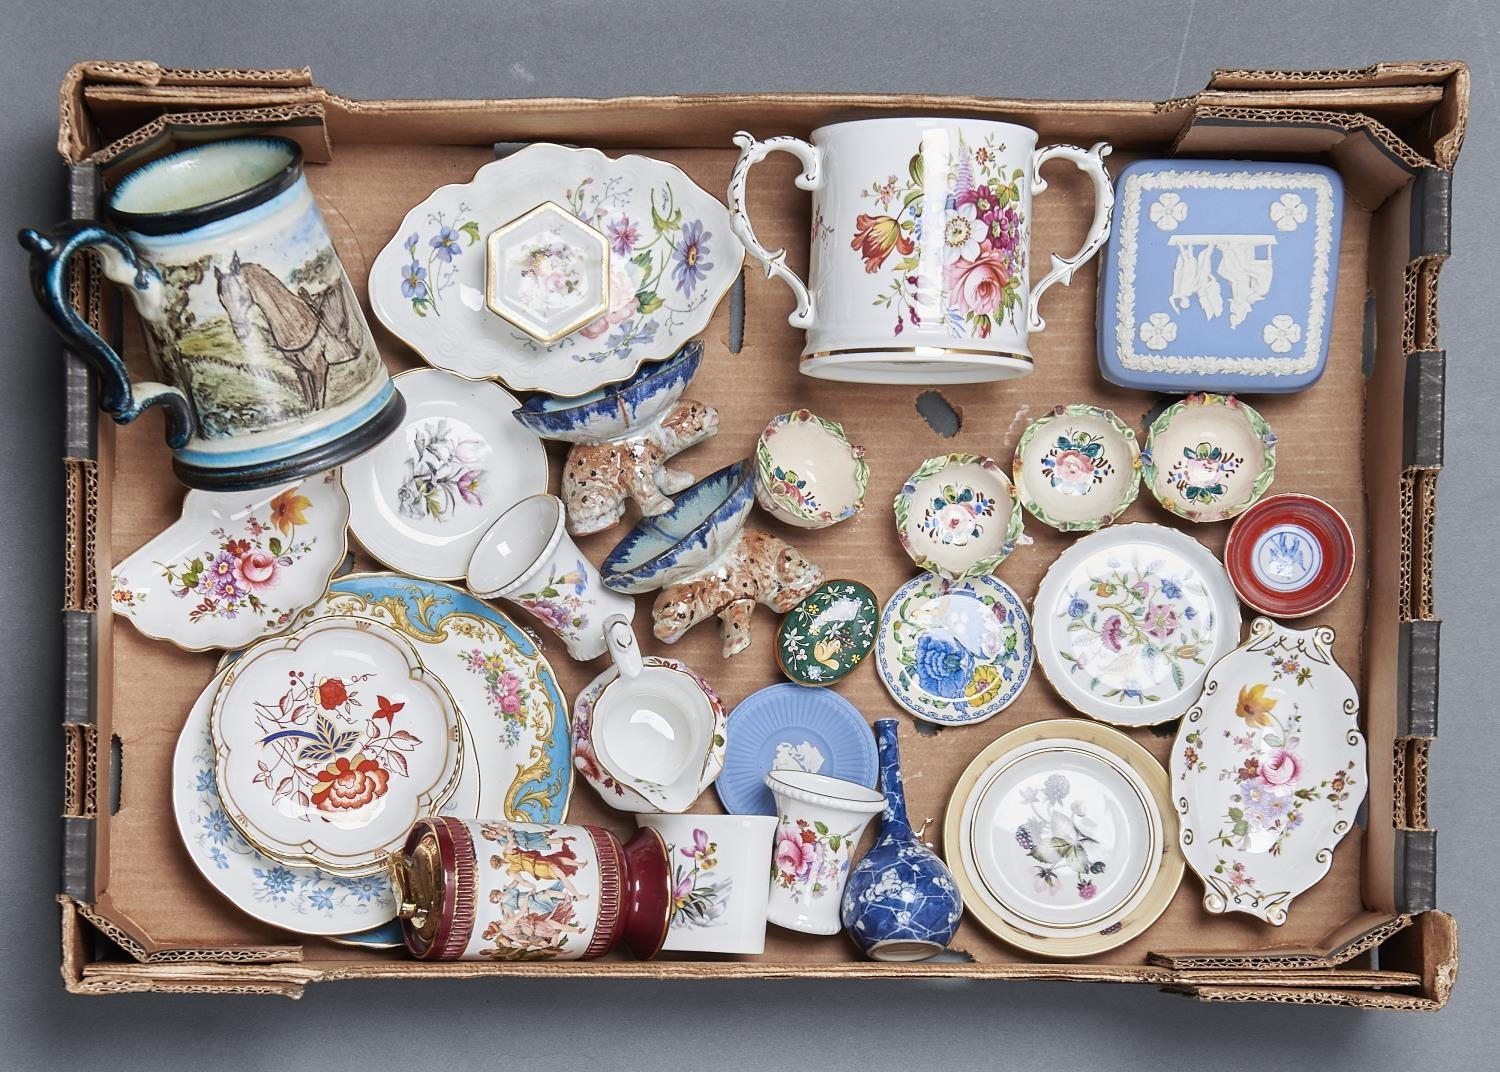 A QUANTITY OF DECORATIVE CERAMICS, INCLUDING HAMMERSLEY TWO HANDLED CYLINDRICAL MUG, TWO ROYAL CROWN